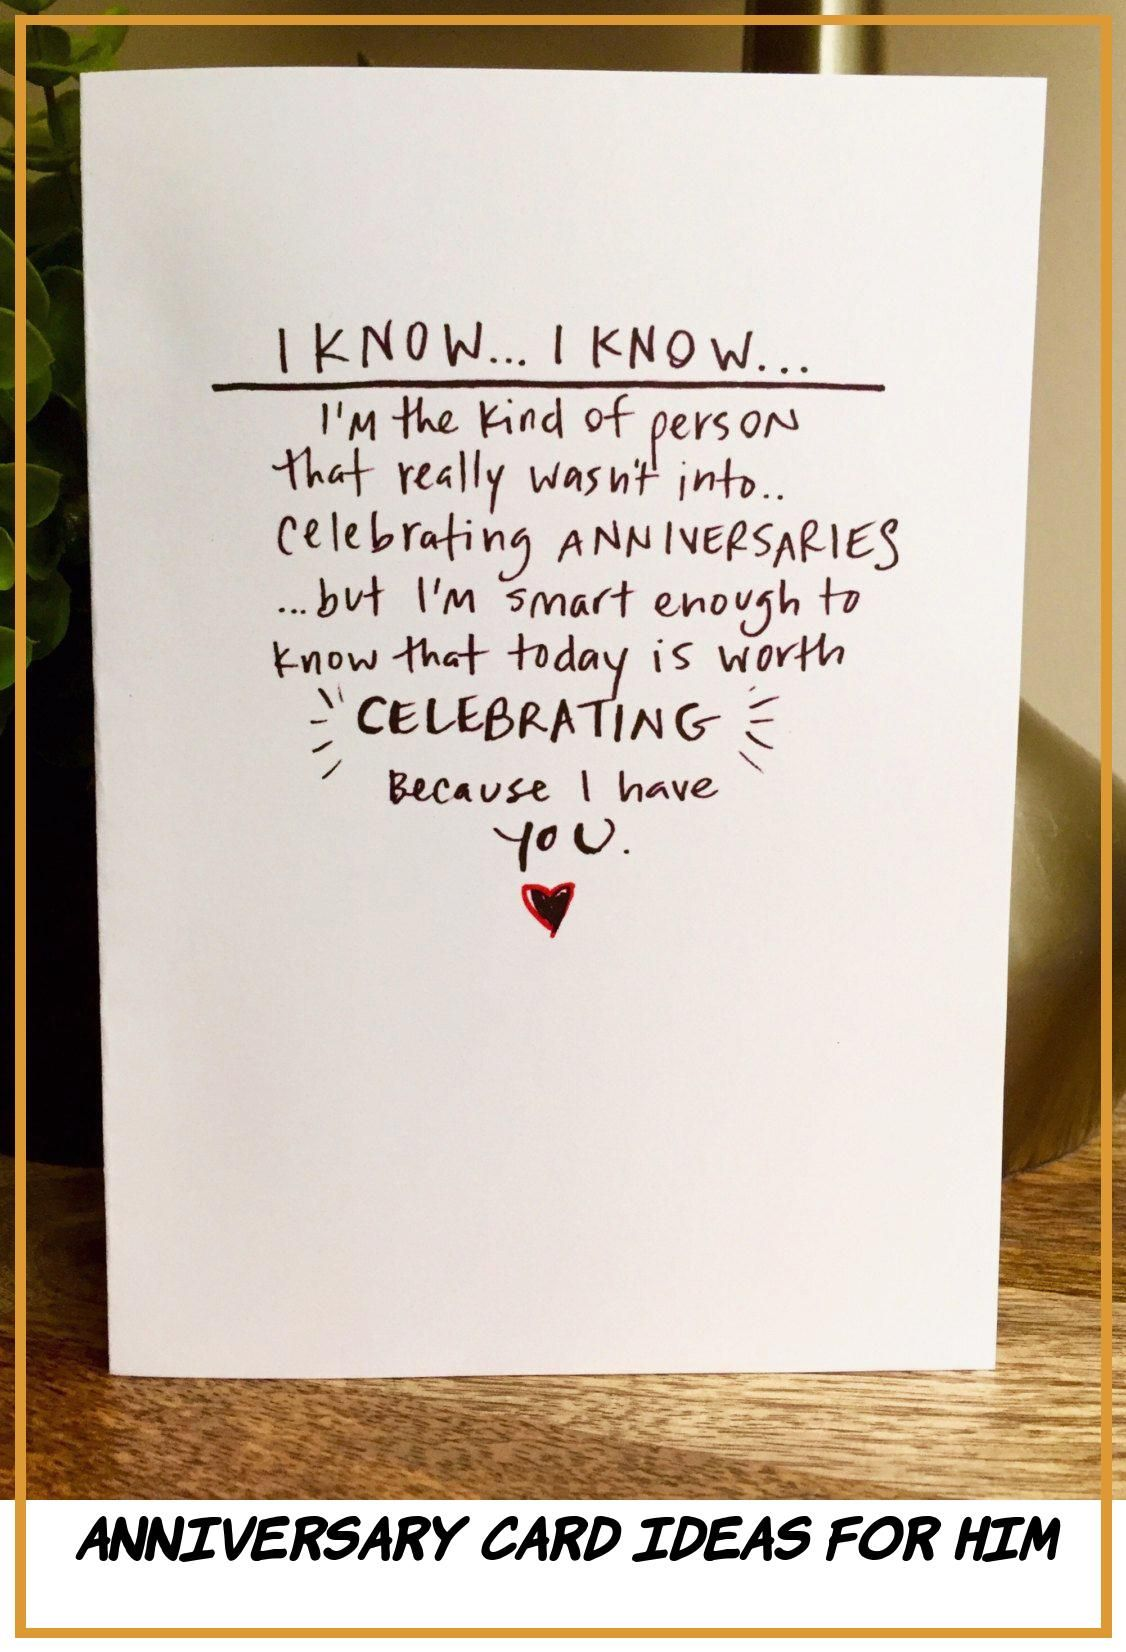 14 Good Anniversary Card Ideas for Him in 2020